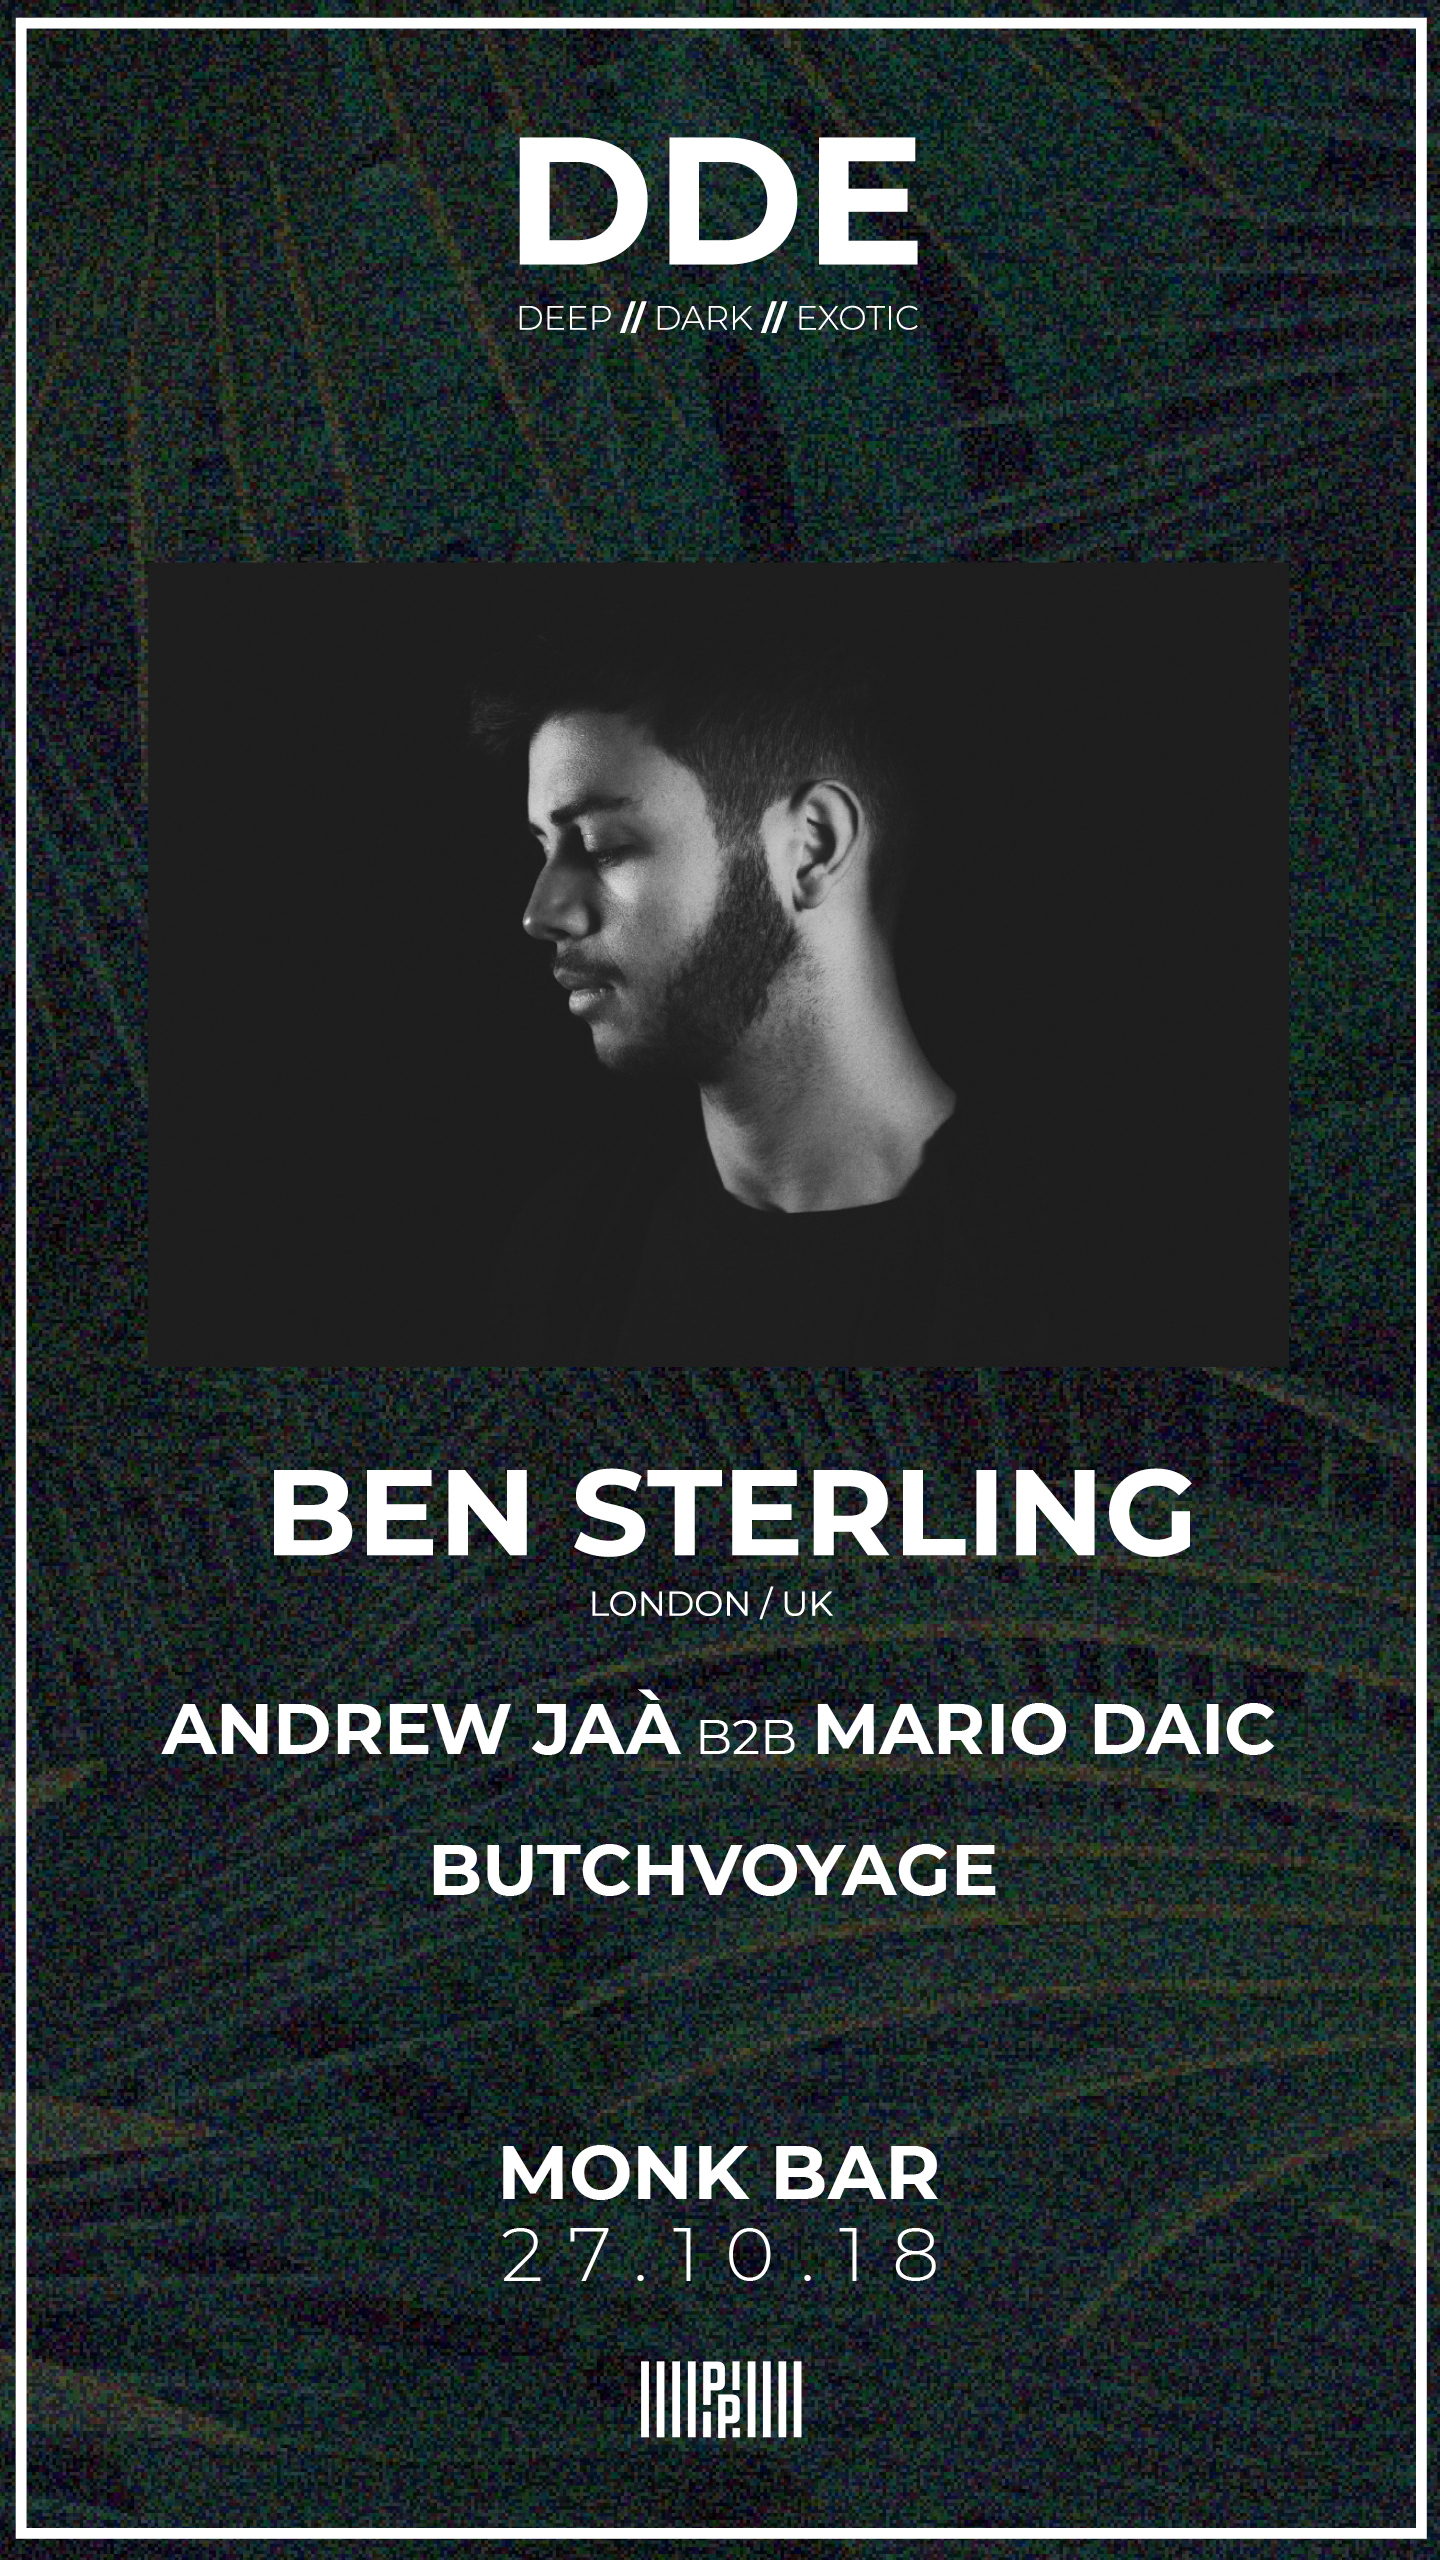 27.10.2018 | PP pres: DDE w/ Ben Sterling (London/UK)